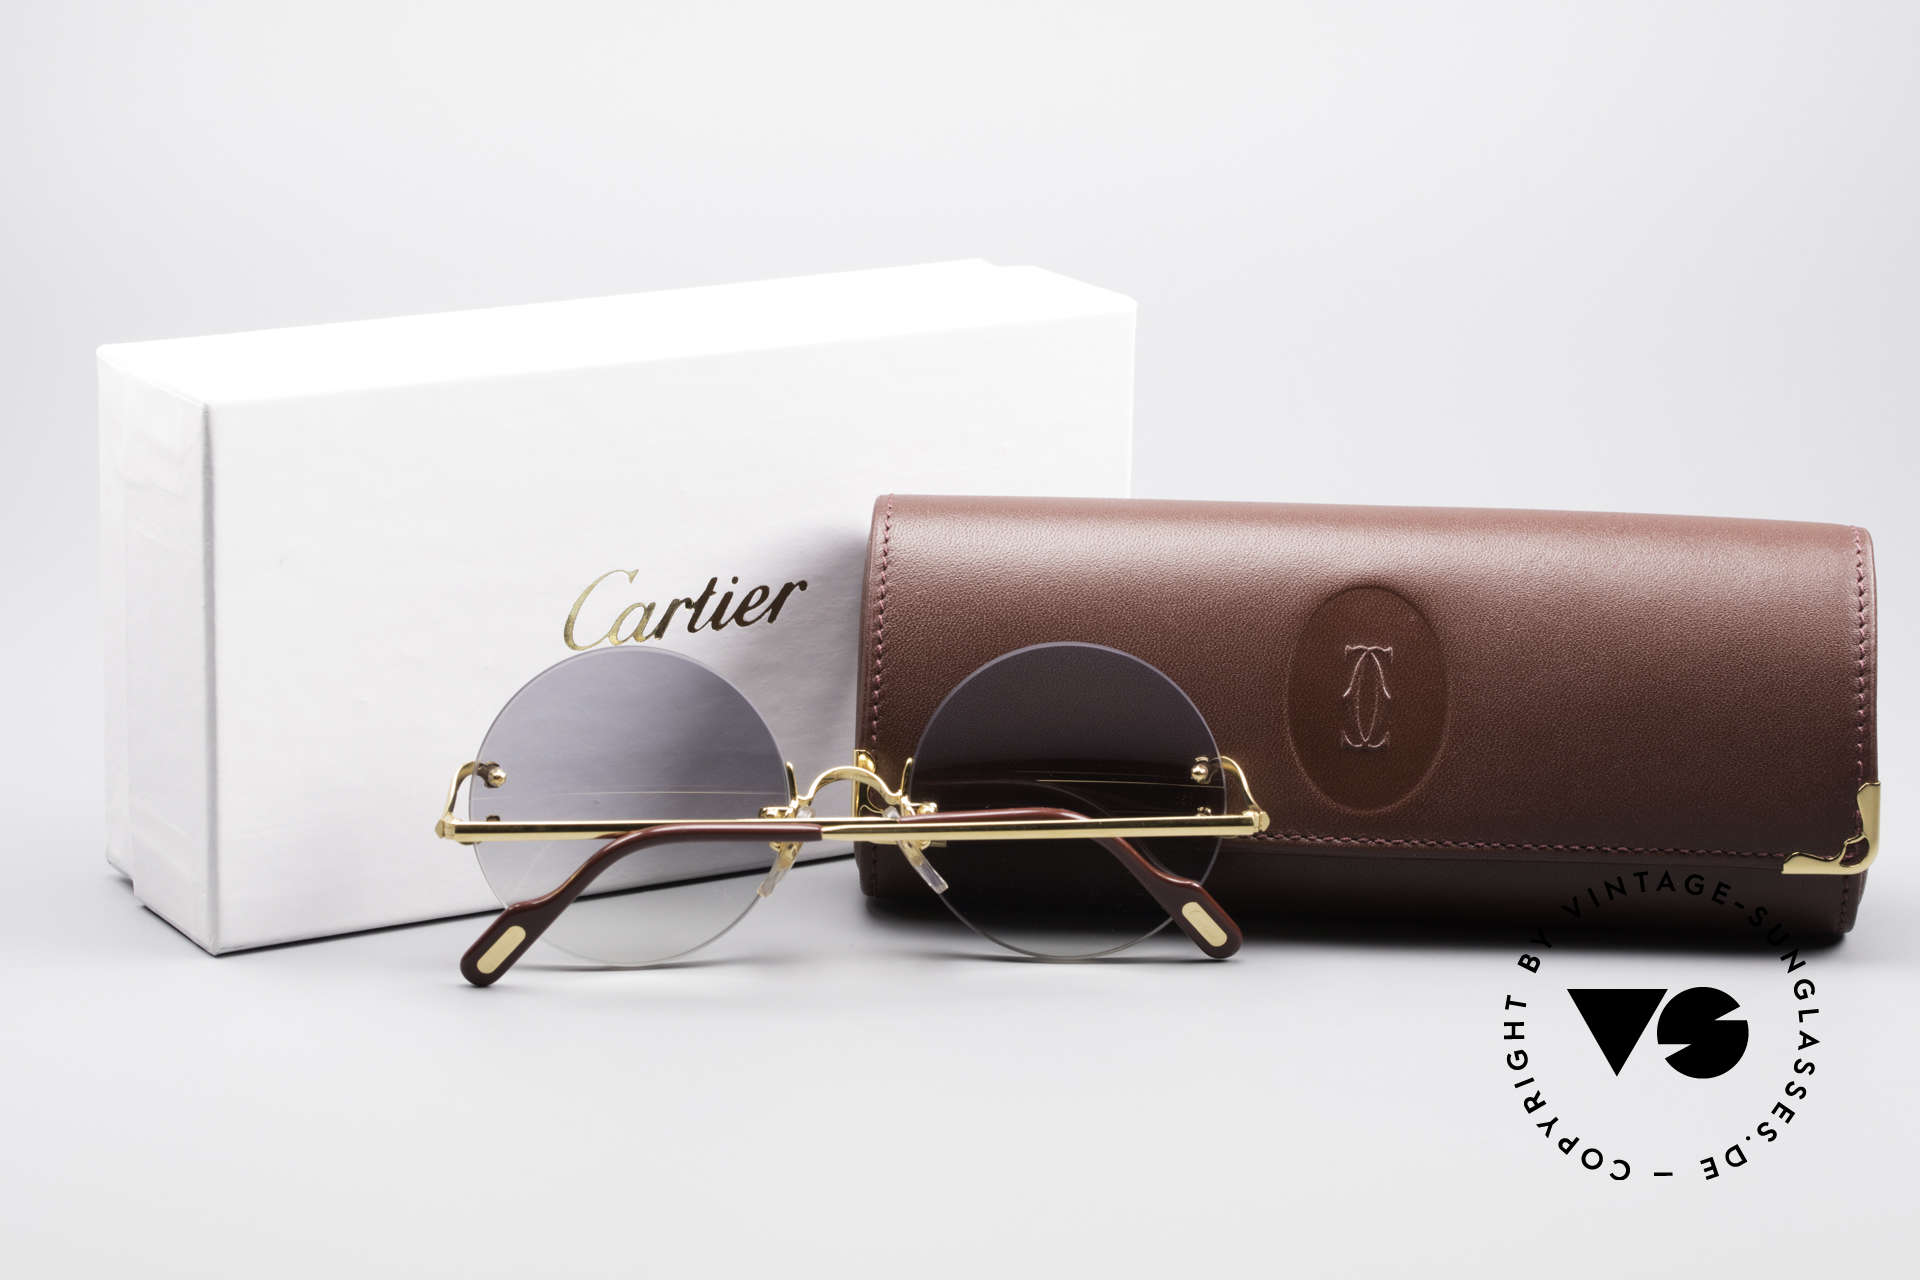 Cartier Madison Round Rimless Sunglasses, many celebrities wear this Cartier model, these days, Made for Men and Women